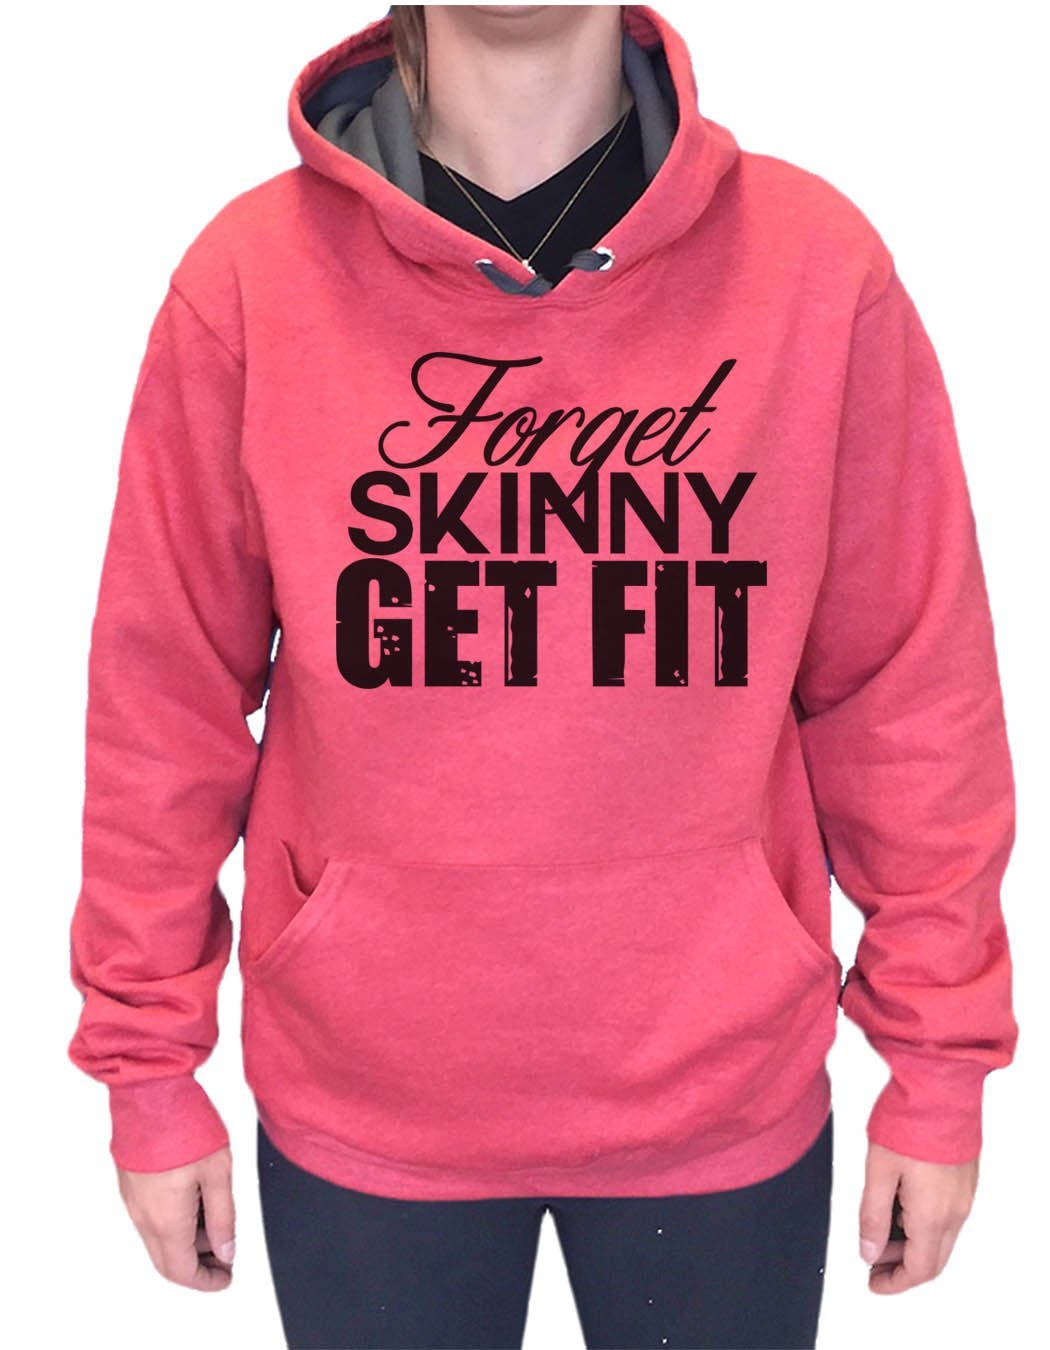 UNISEX HOODIE - Forget Skinny Get Fit - FUNNY MENS AND WOMENS HOODED SWEATSHIRTS - 2130 Funny Shirt Small / Cranberry Red